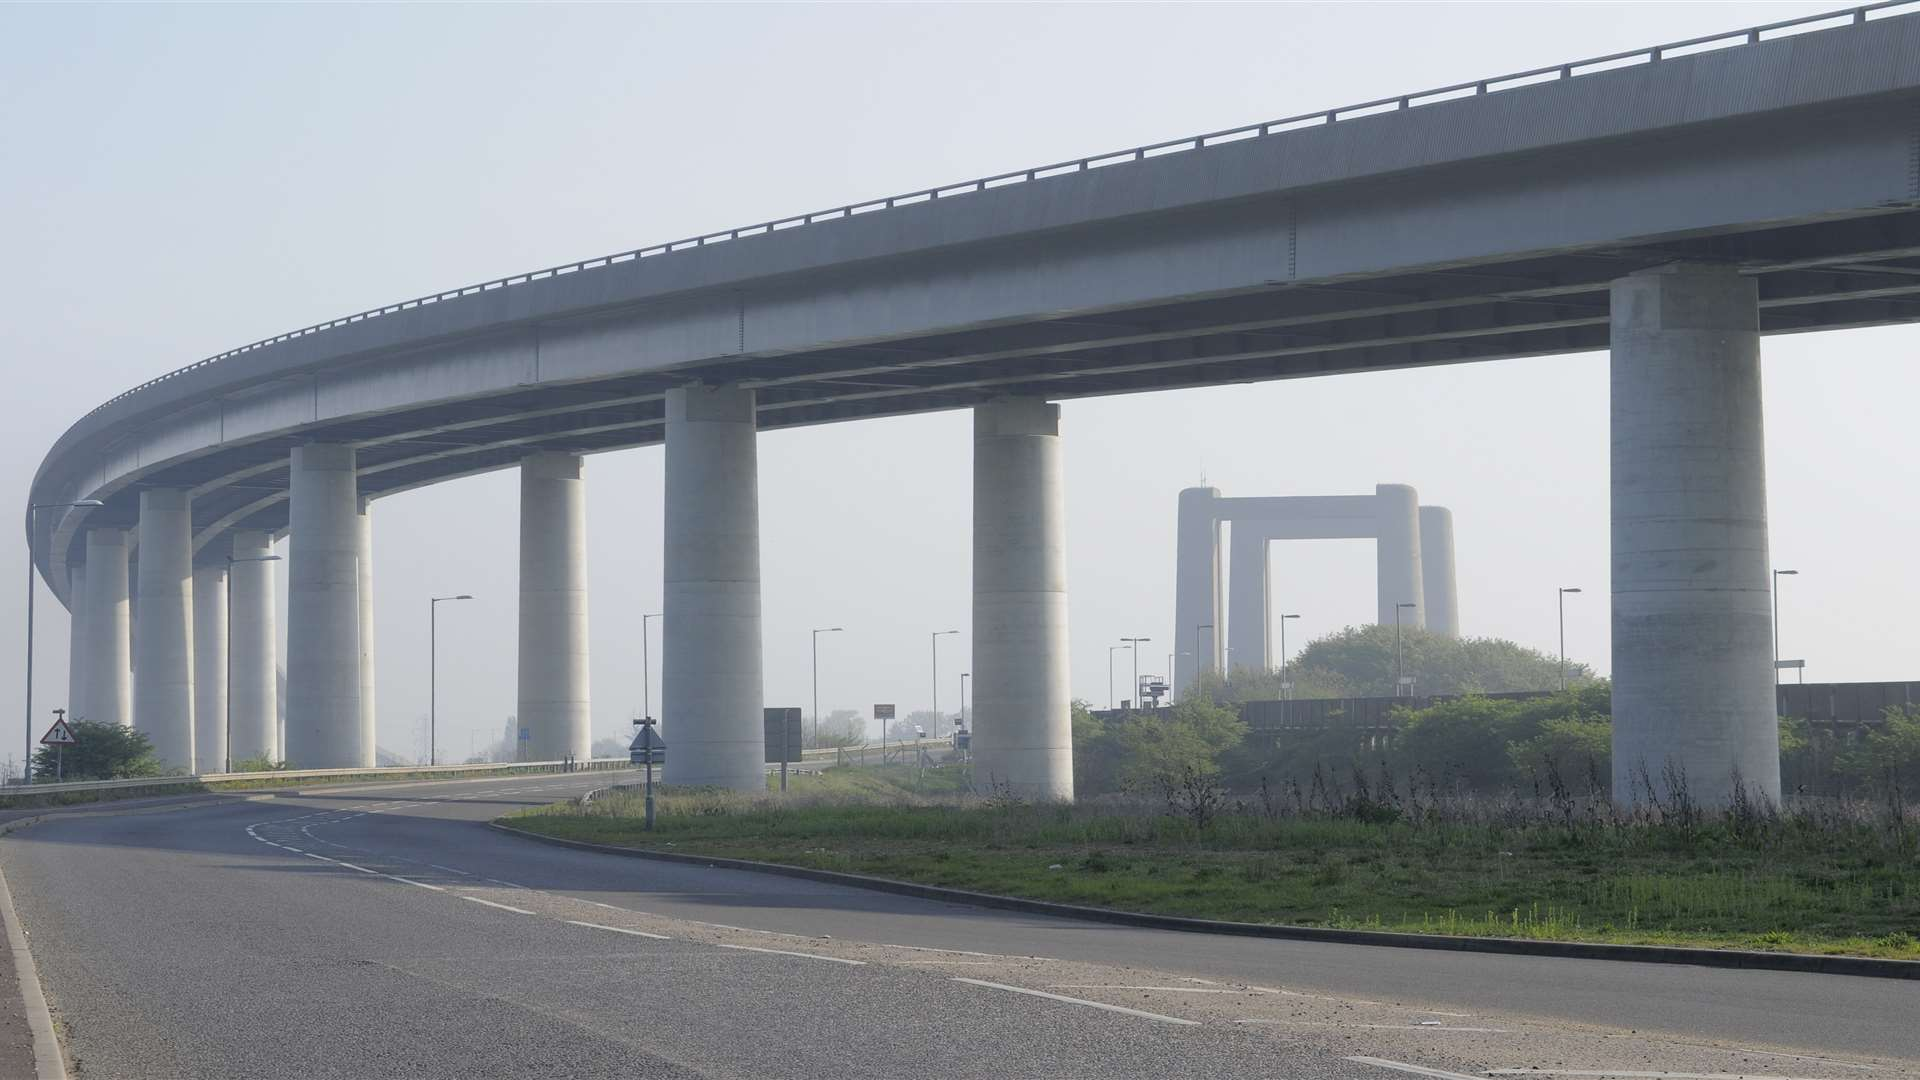 The Sheppey Crossing